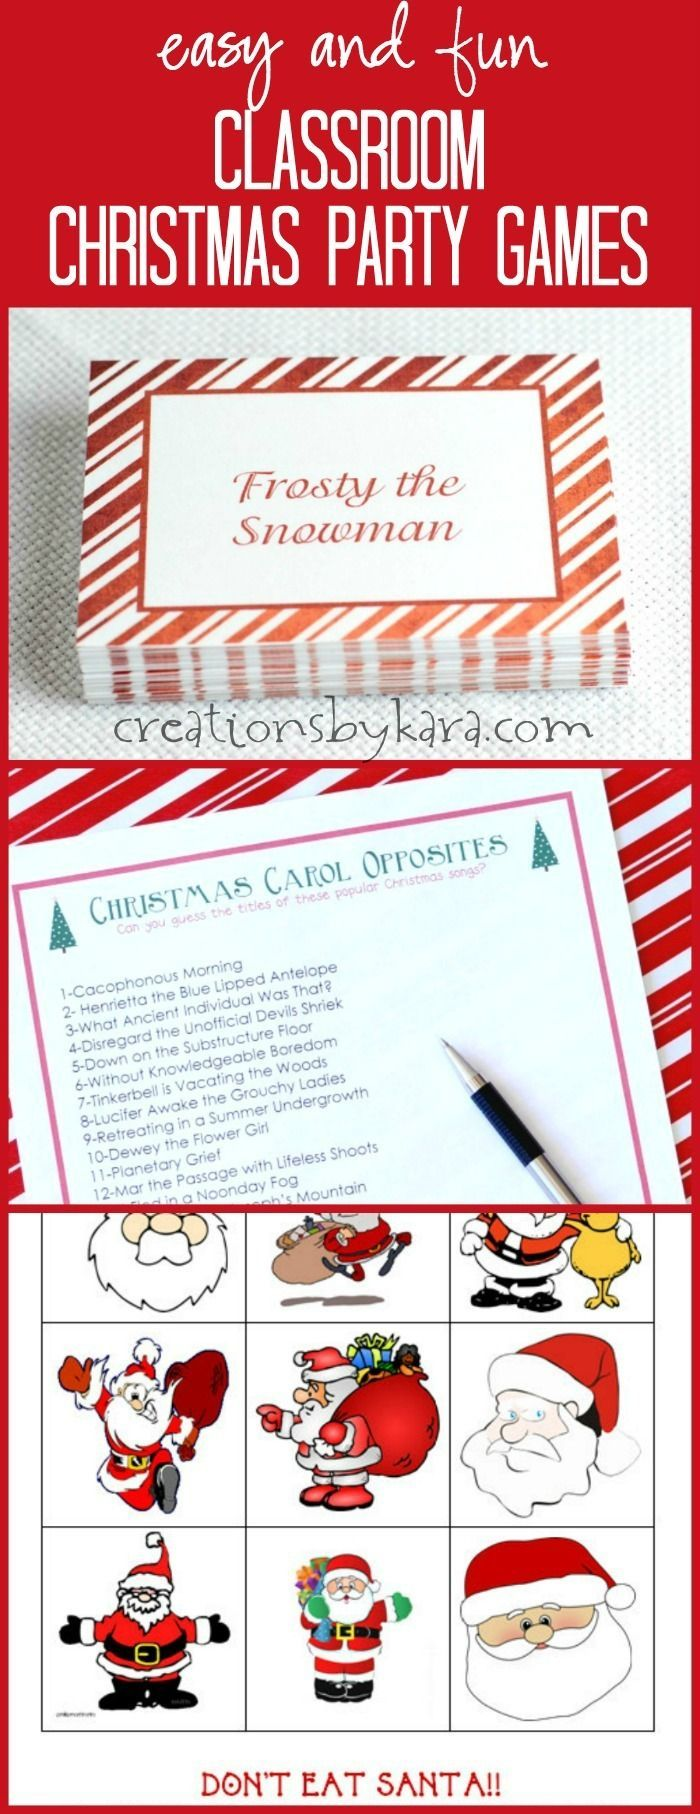 Christmas games to use at Christmas classroom parties. Includes a free printable game